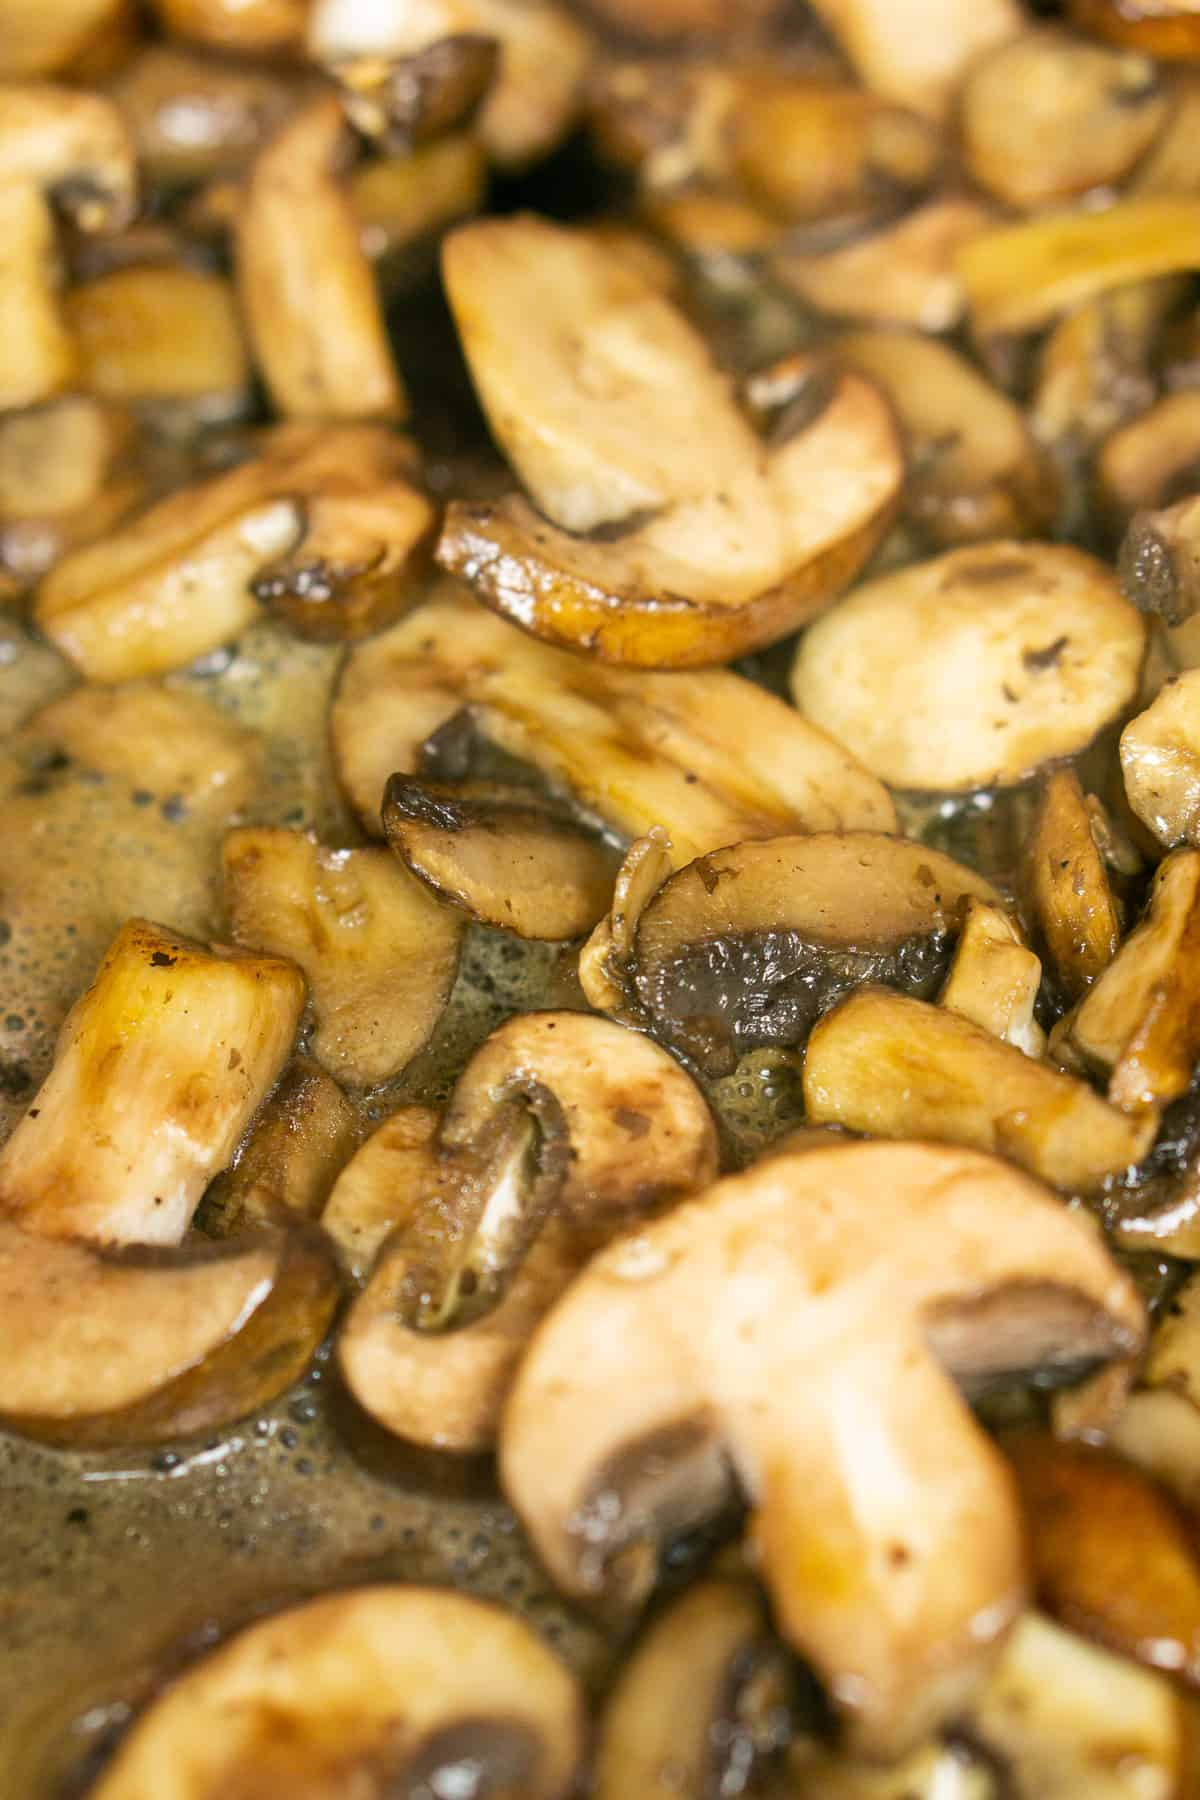 Cooking the mushrooms in a large skillet until they brown.